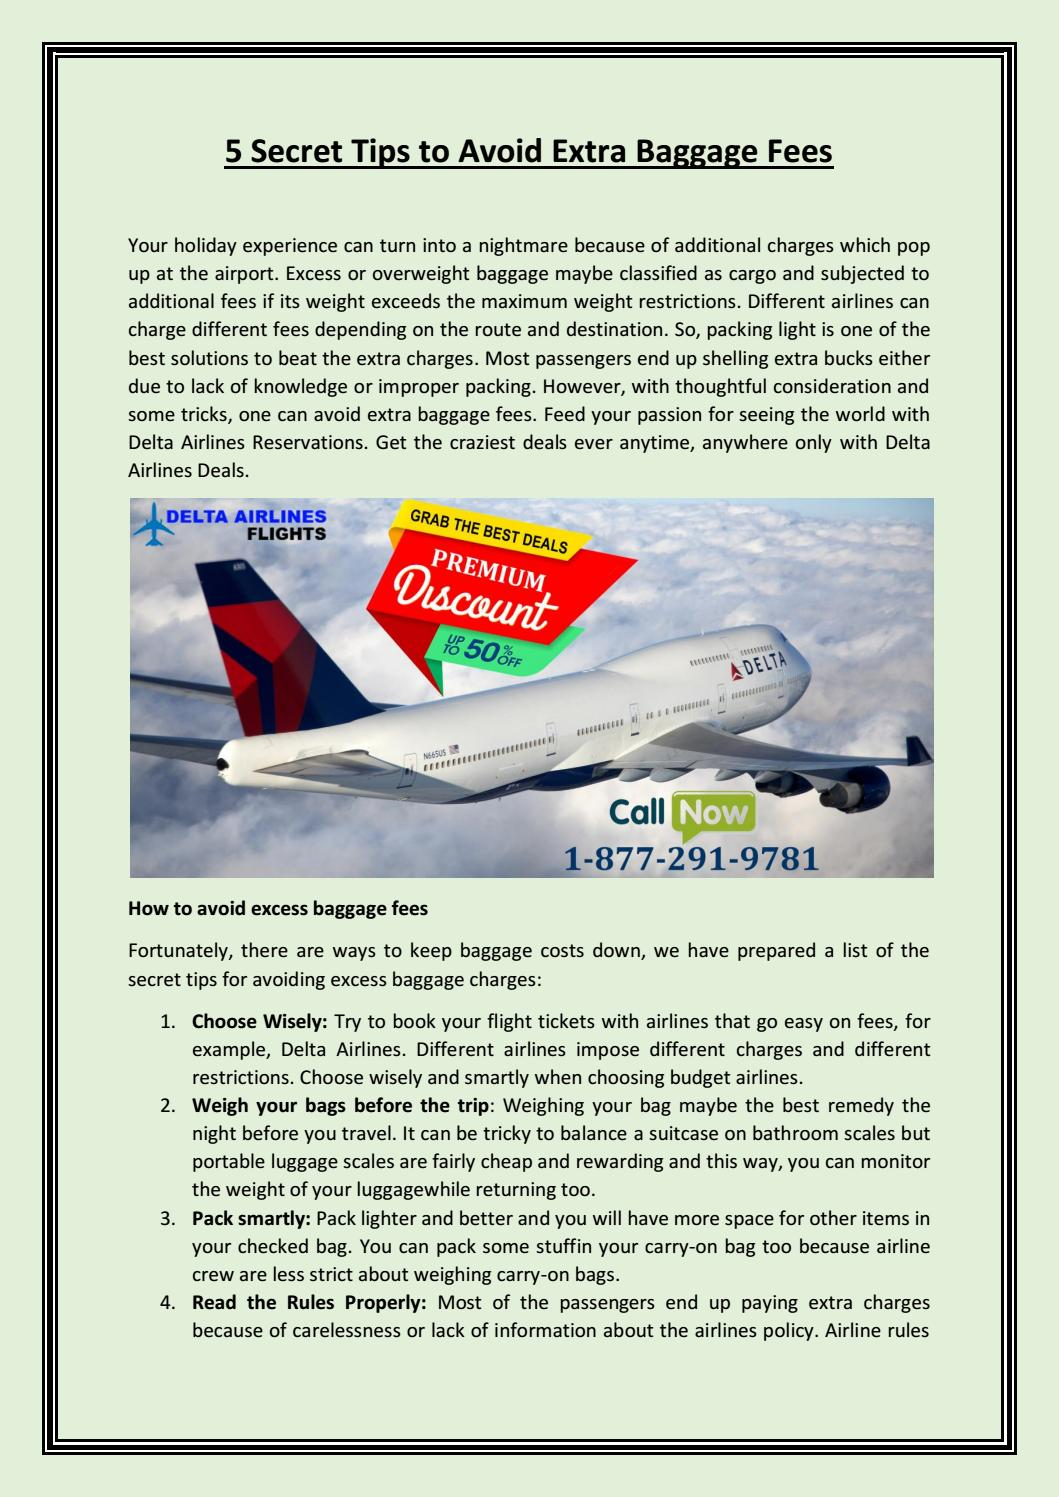 5 Secret Tips To Avoid Extra Baggage Fees By Deltaairlinesflights1 Issuu,Ikea Kitchen Drawer Organizers